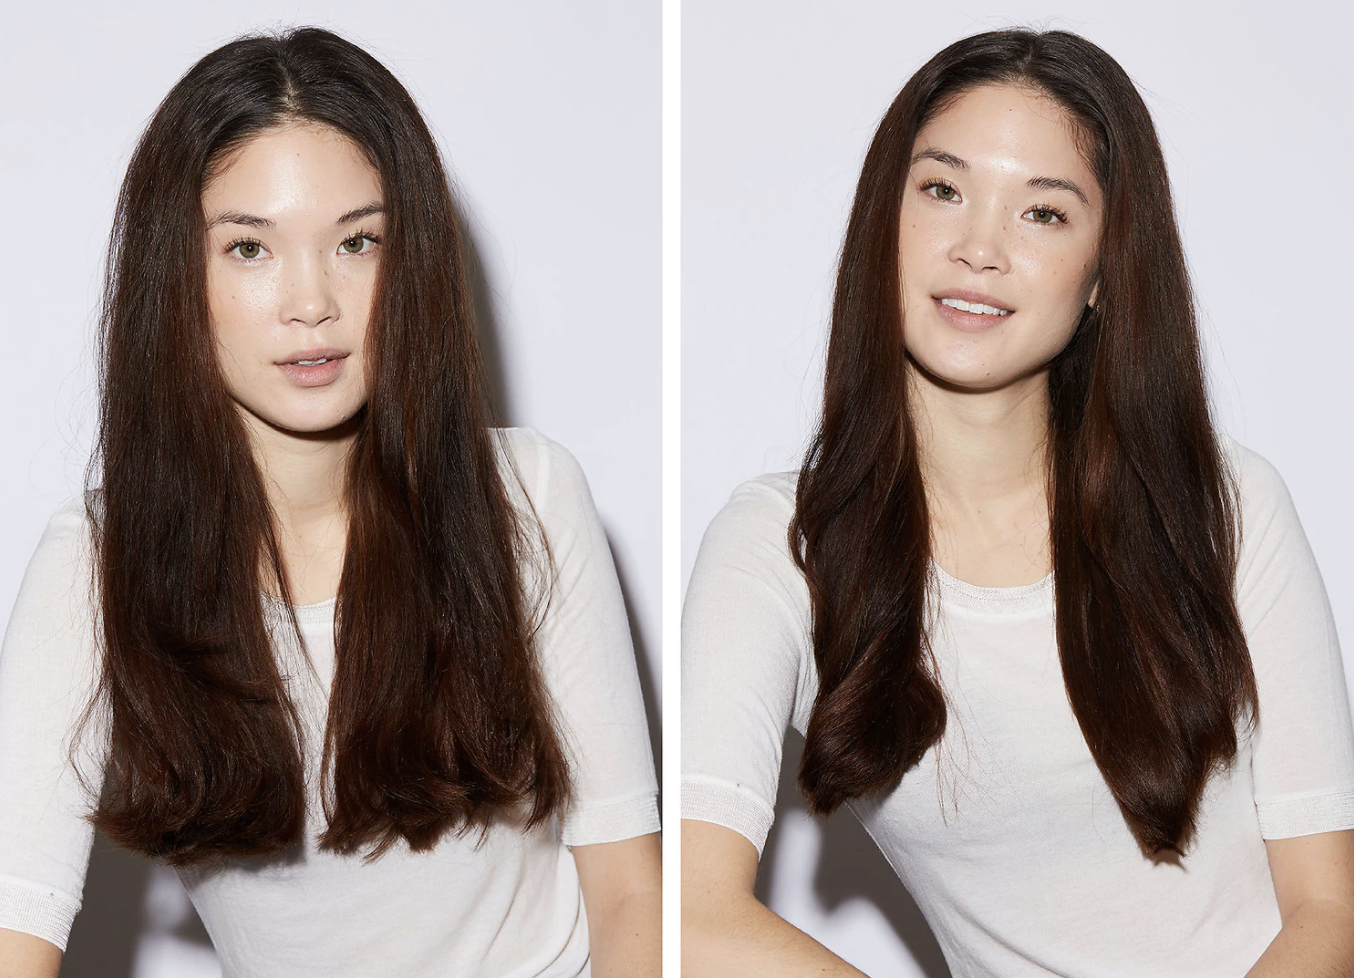 Before of a model with frizzy long hair and then an after of the same model with sleek, frizz-free hair after using the product